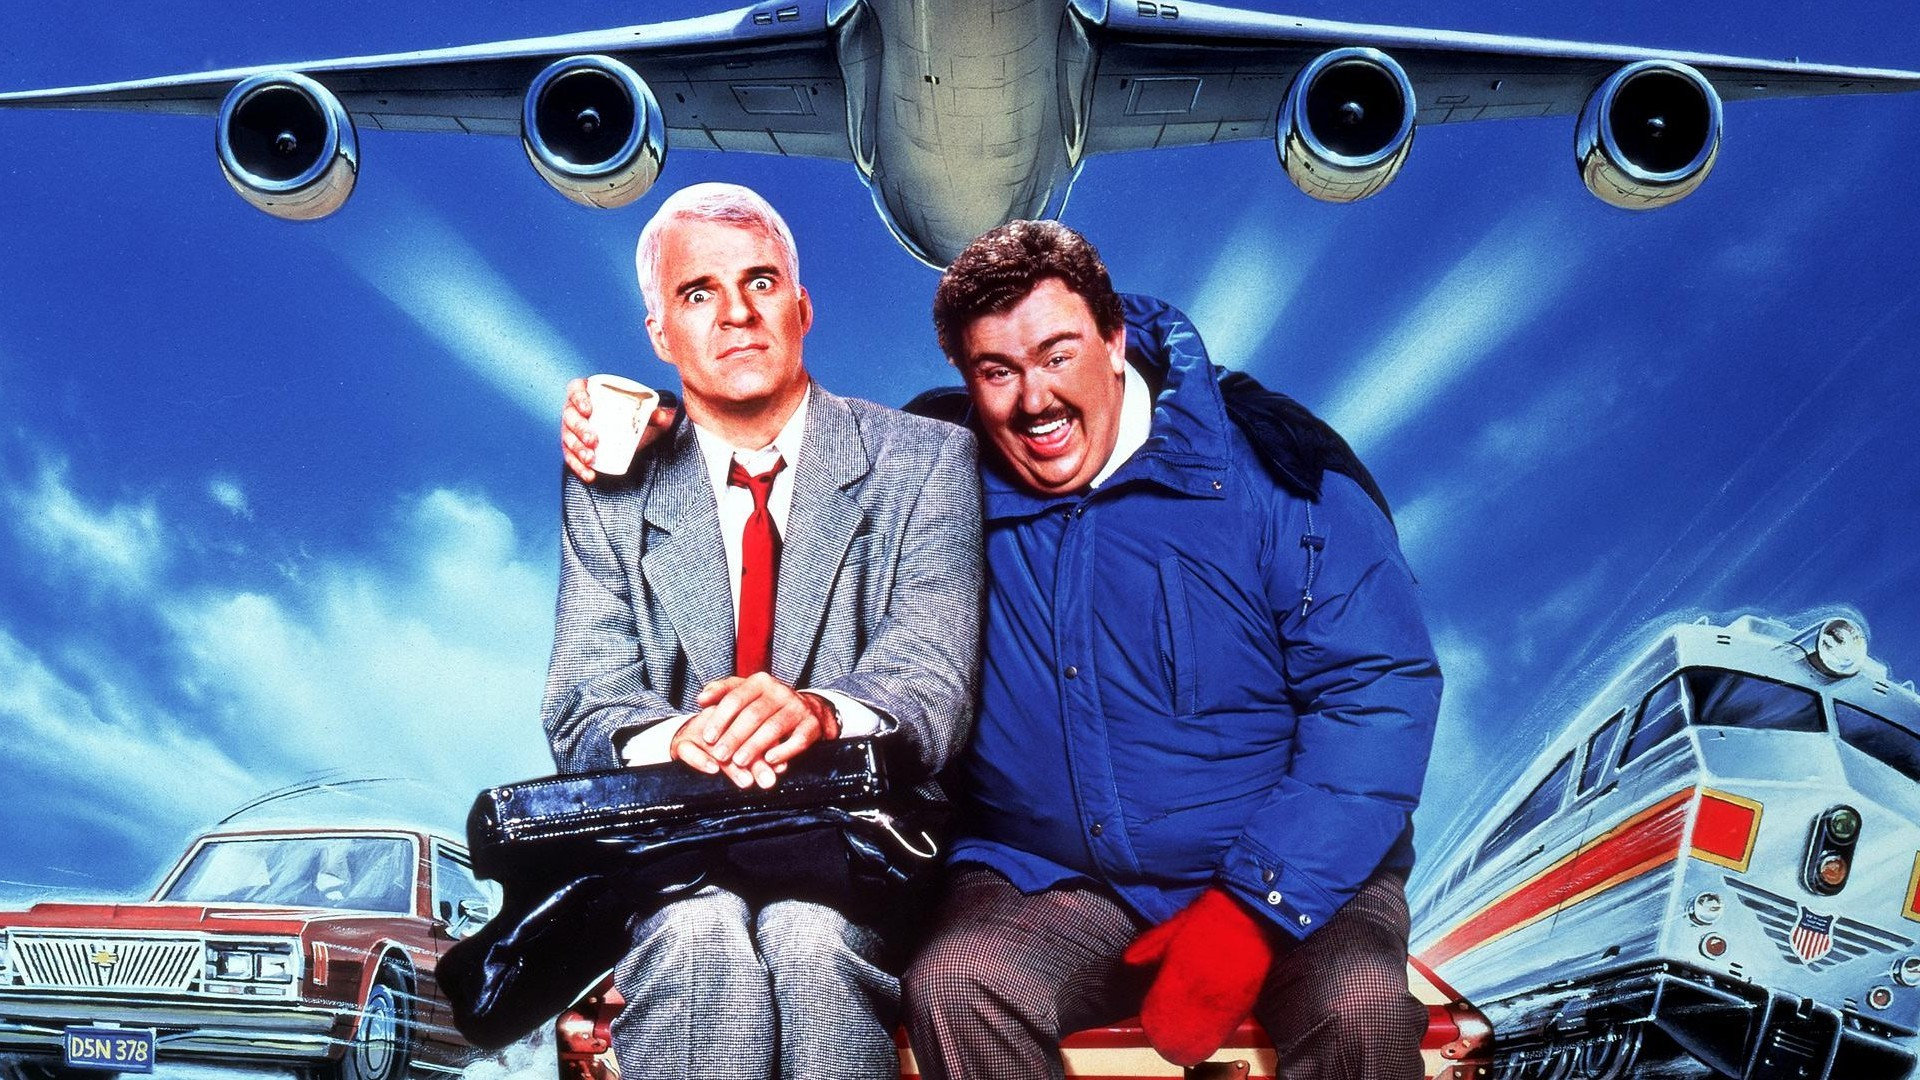 thanksgiving movies planes, trains, and automobiles